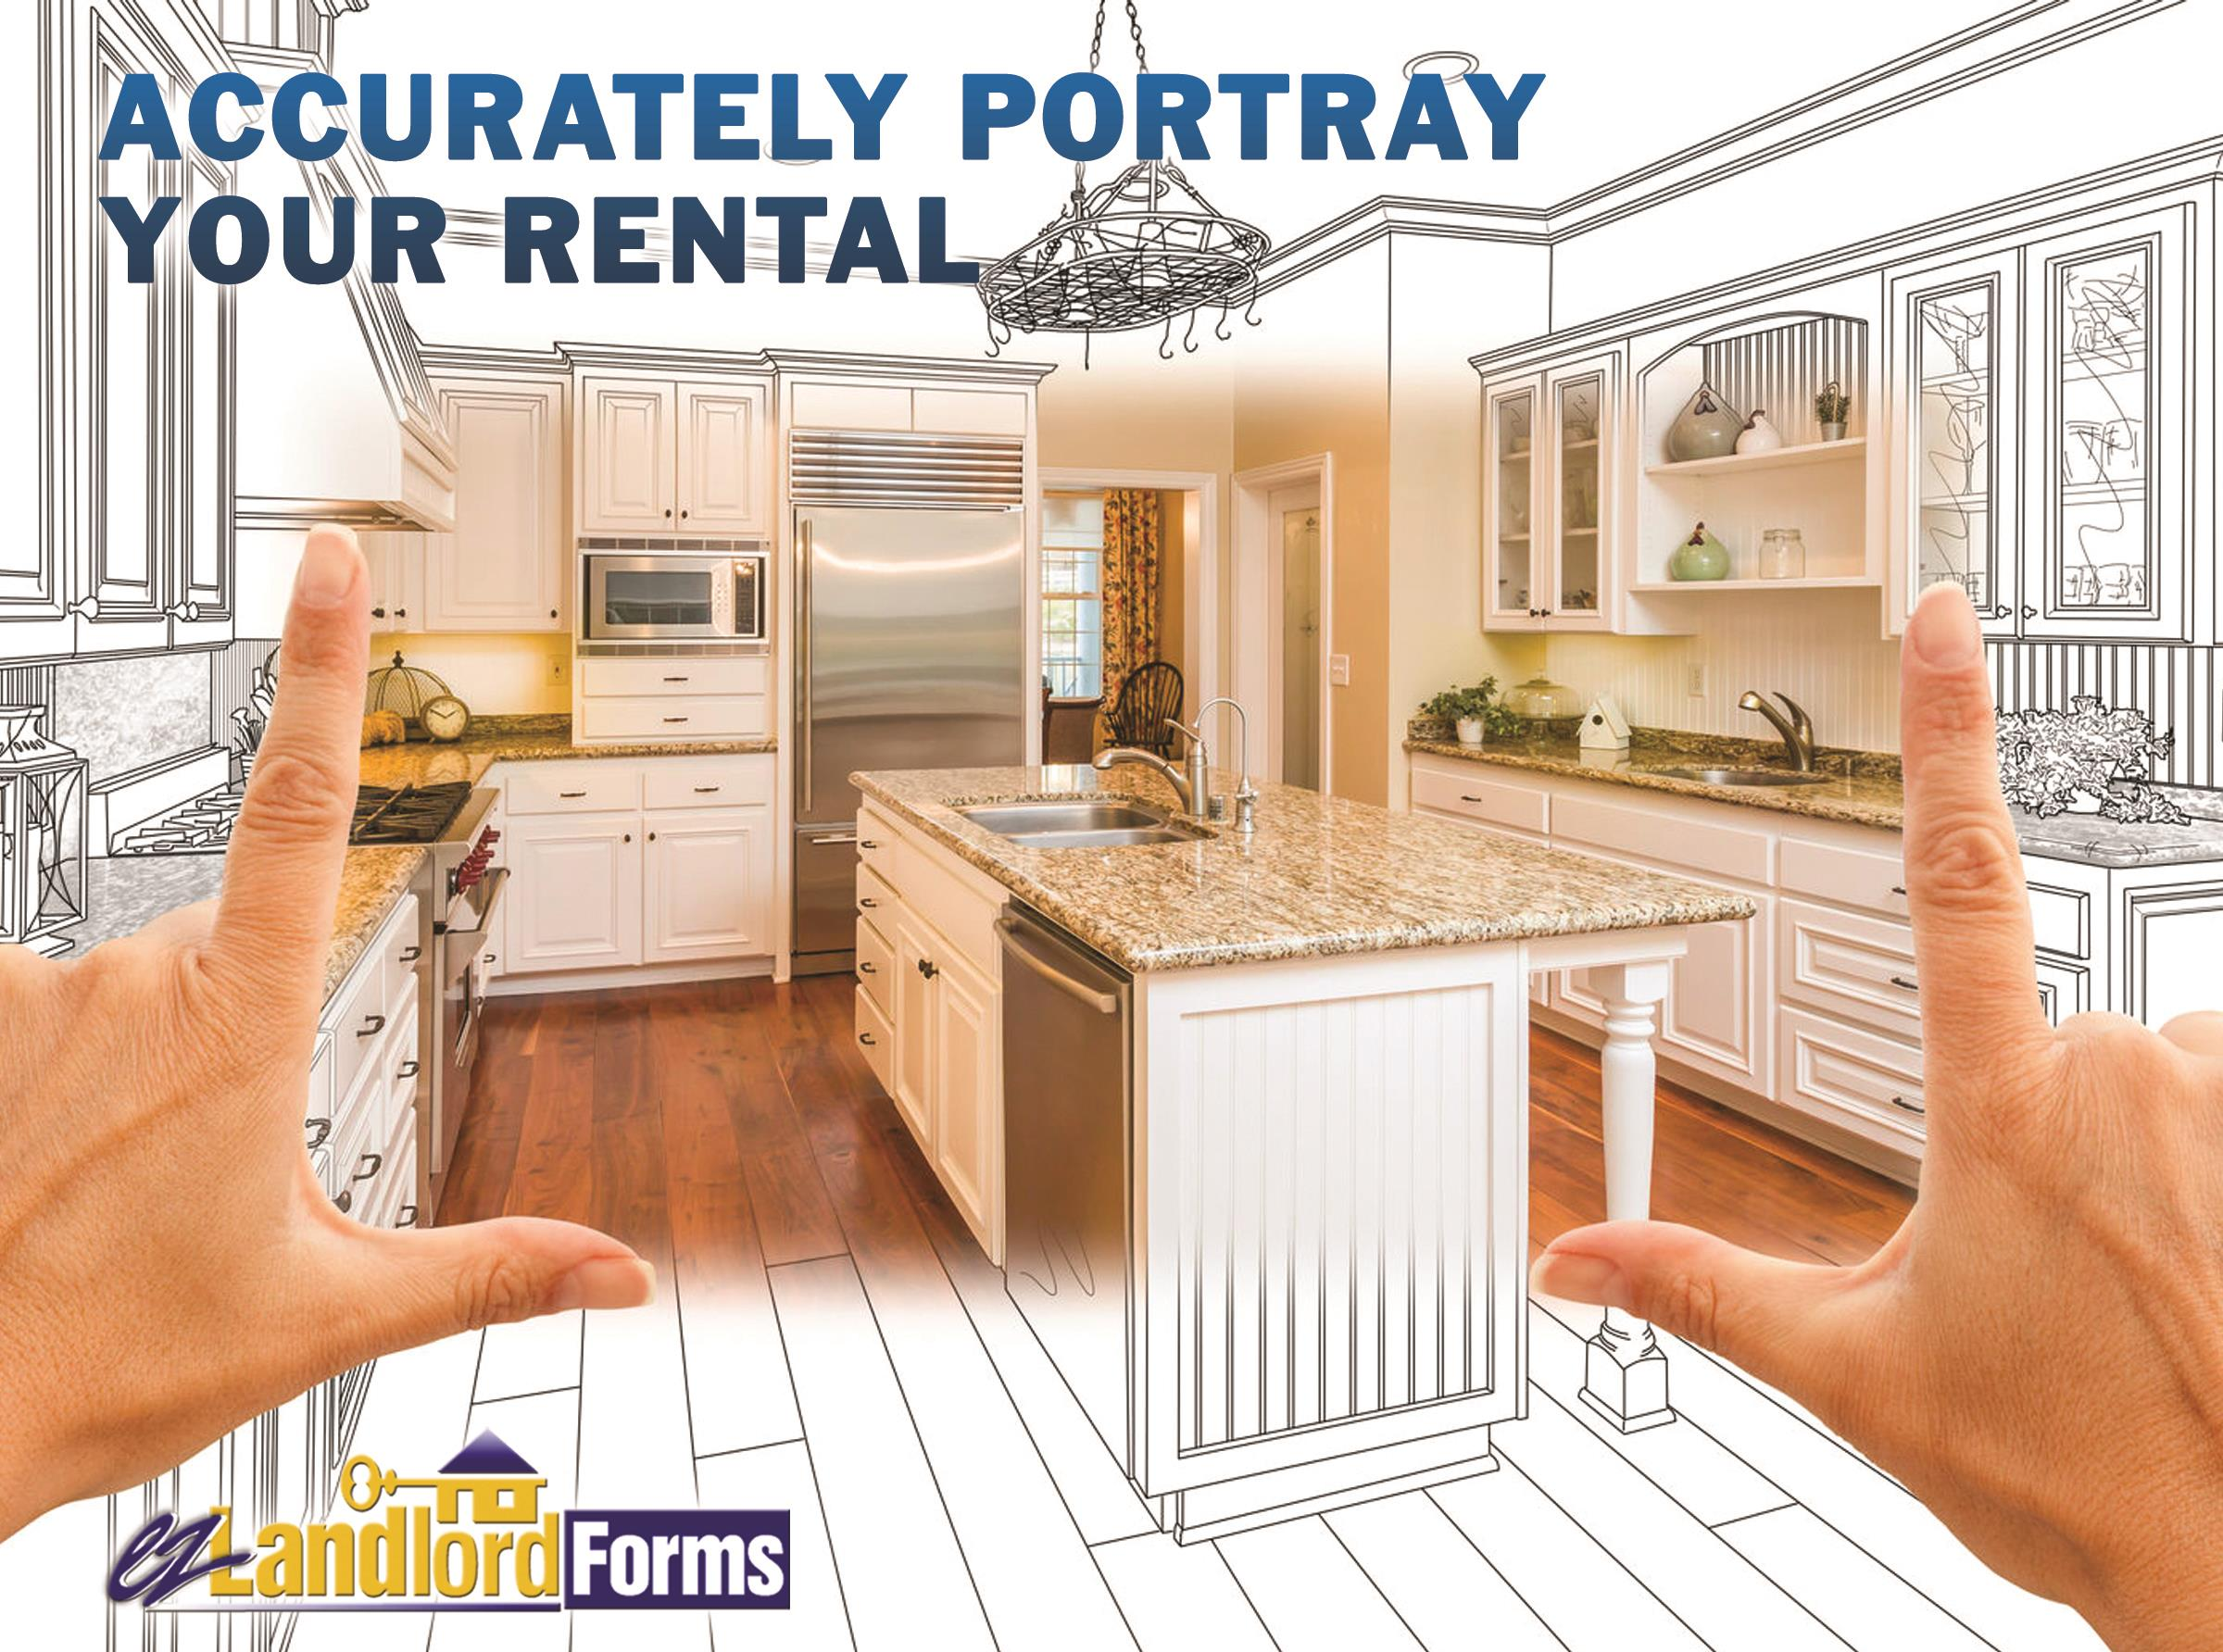 Stage_Your_Rental_So_the_Best_Tenants_Find_You